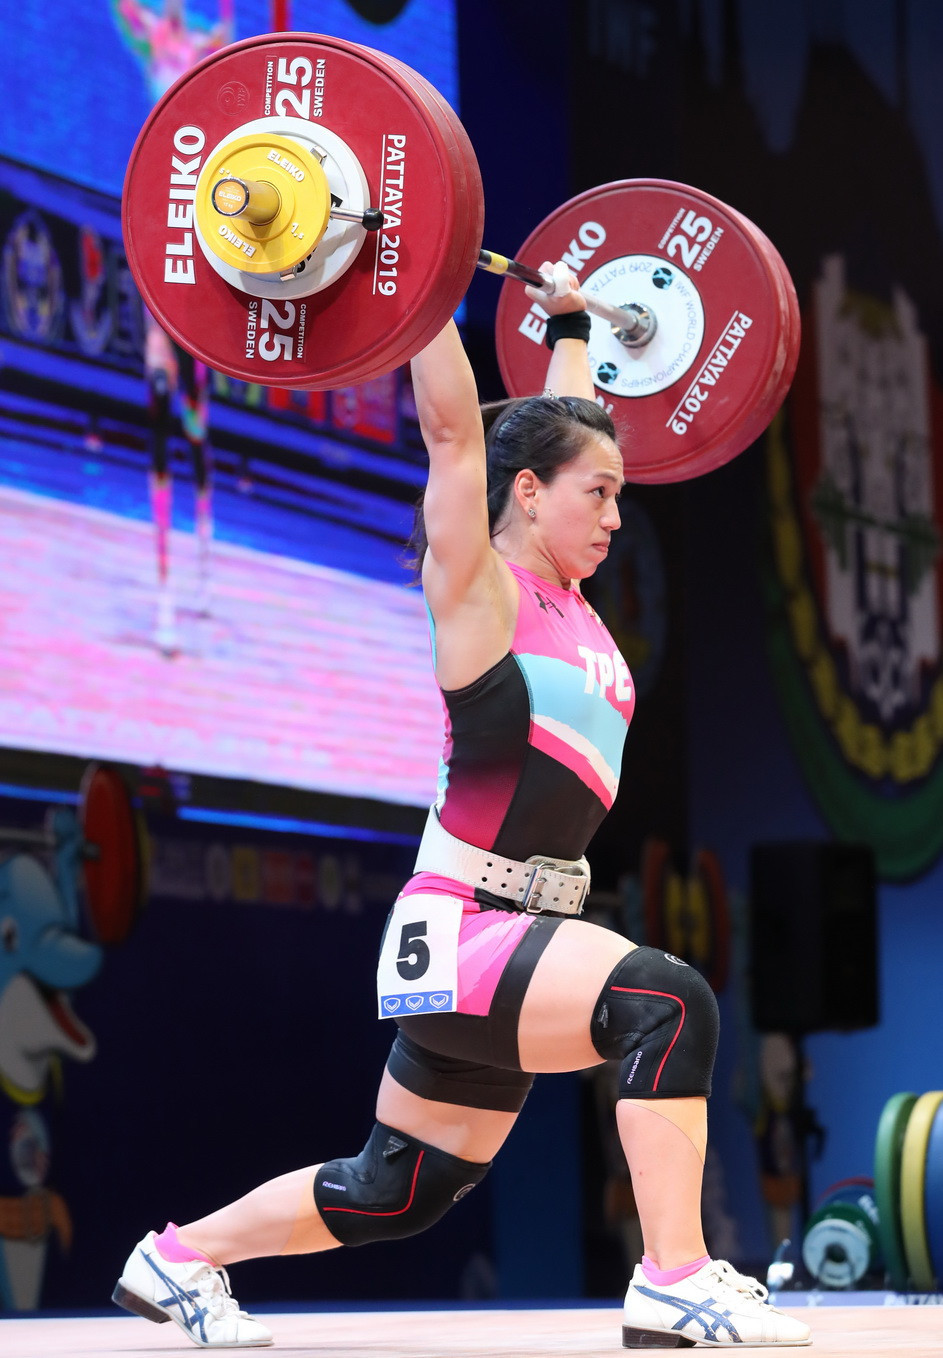 Chinese Taipei's Kuo Hsing-Chun successfully defended her women's 59 kilograms total title having broken two world records just moments after losing them ©IWF